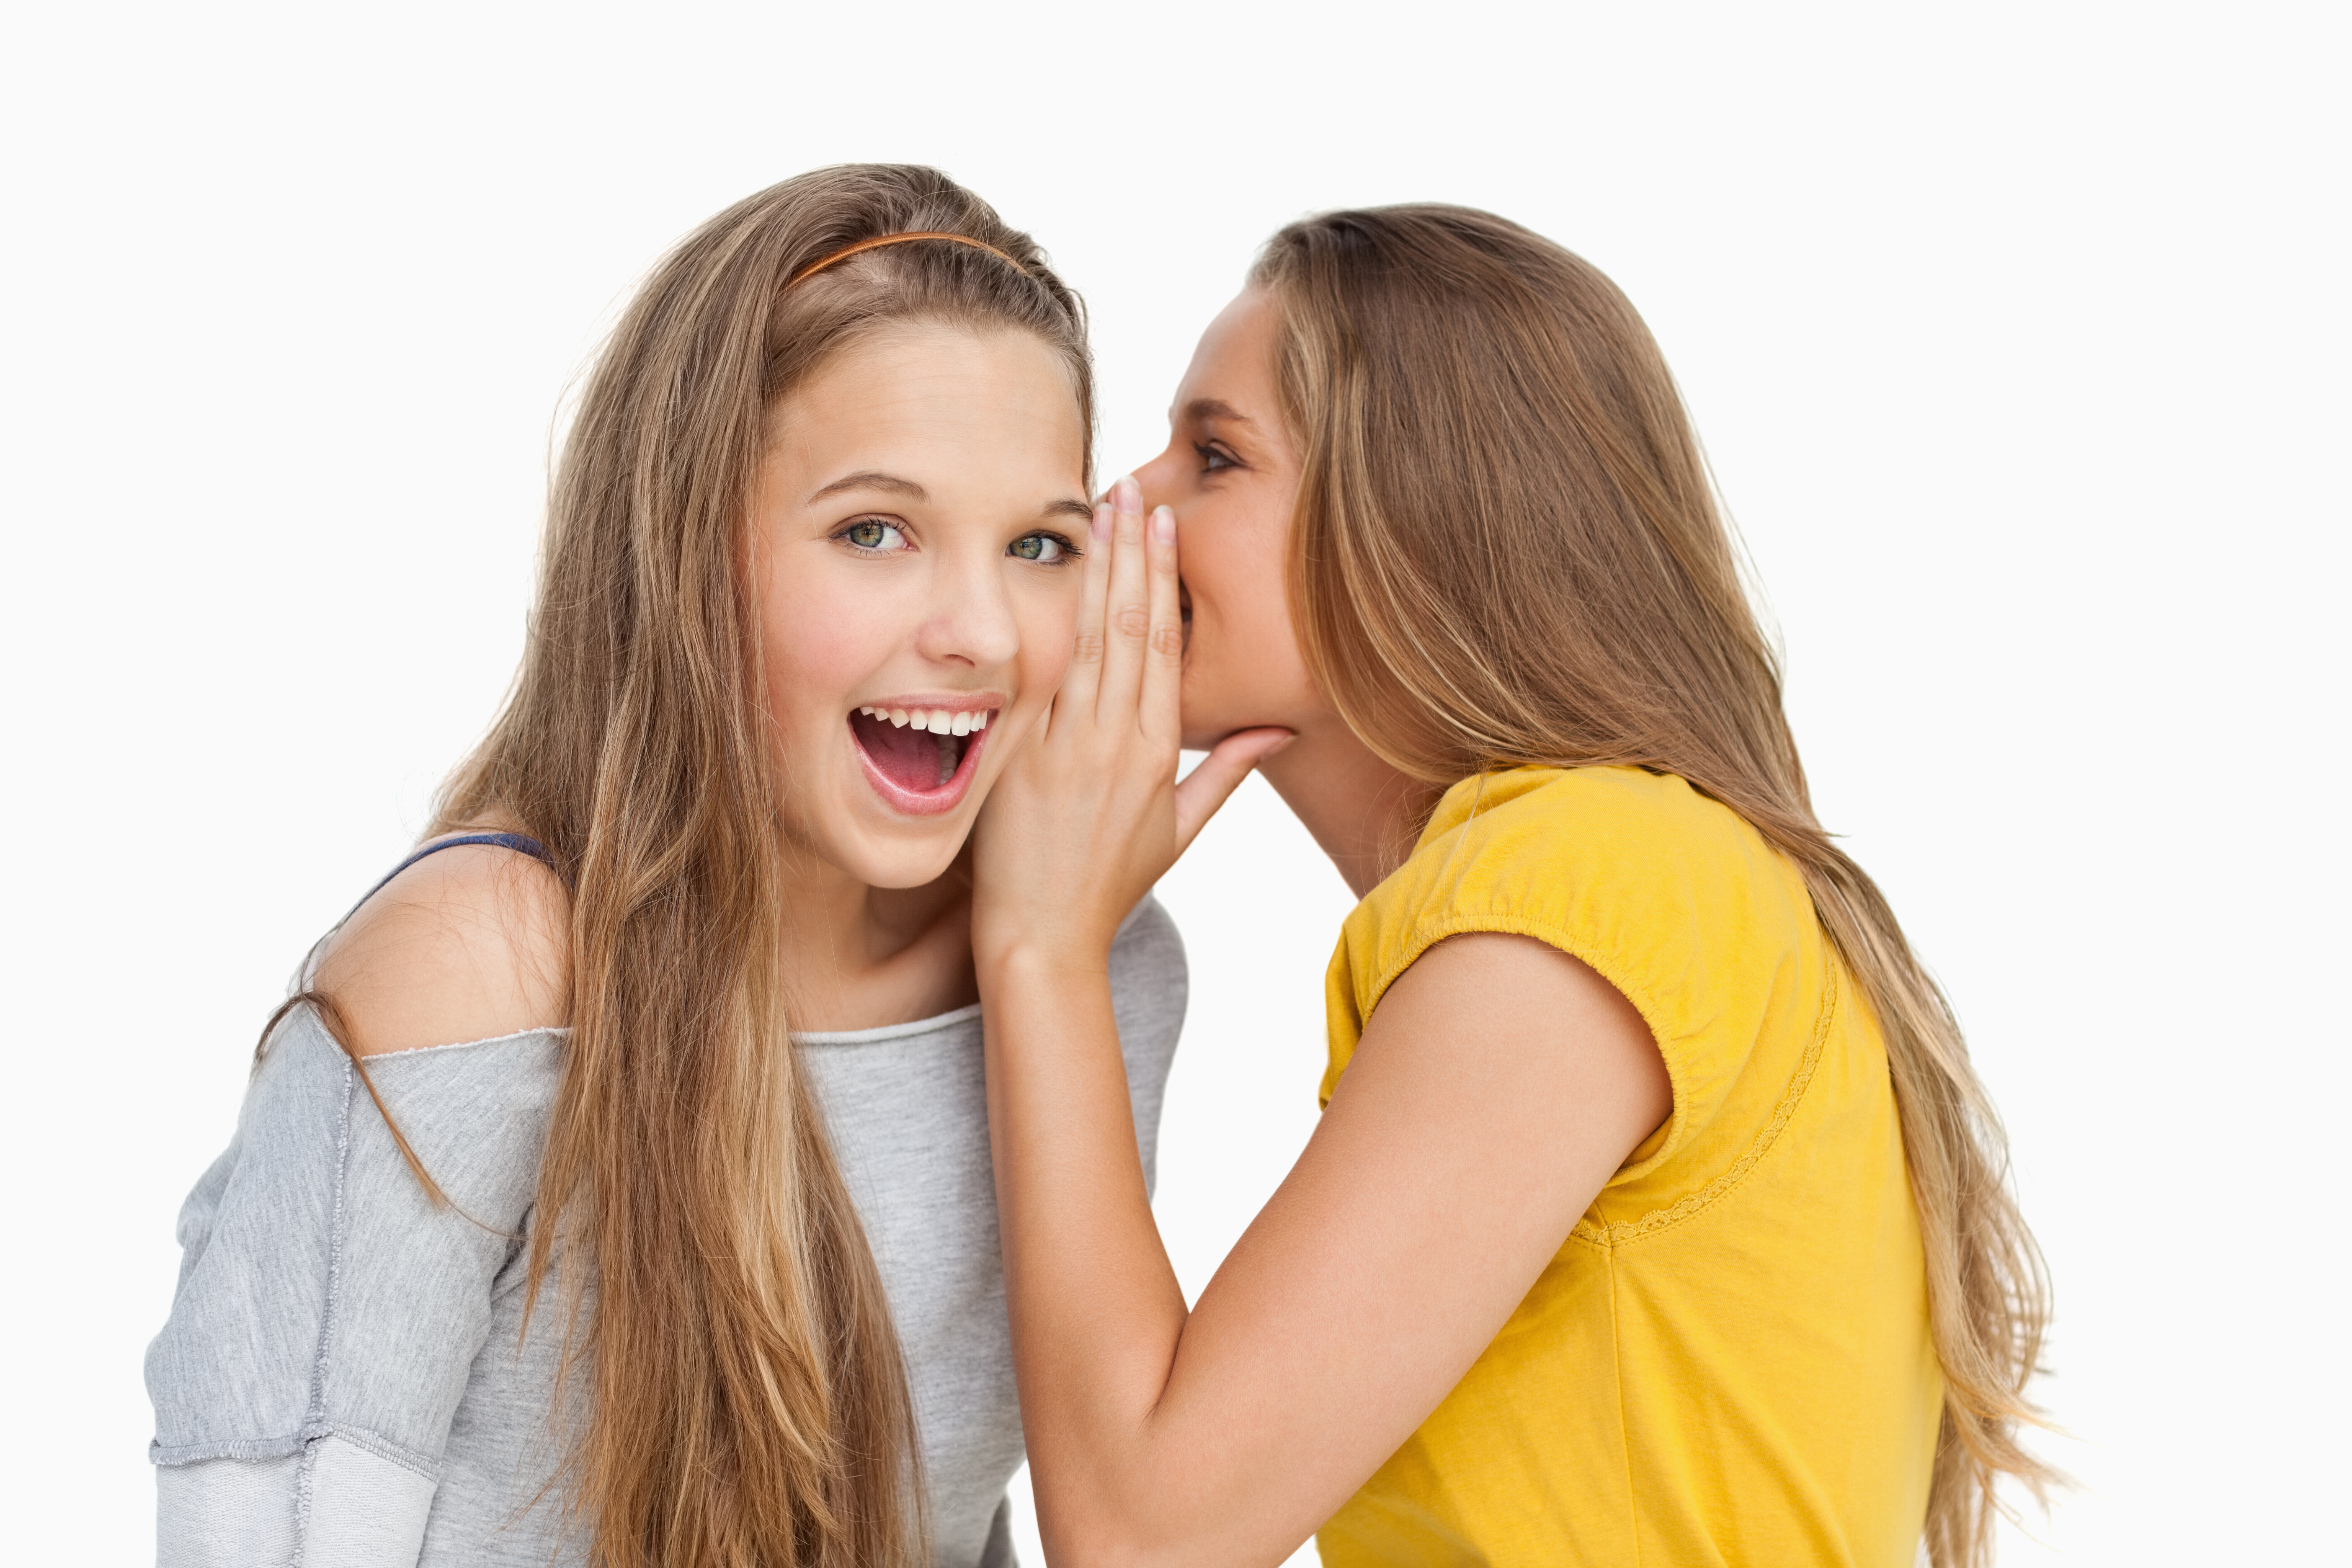 Blonde student whispering to her friend against white background